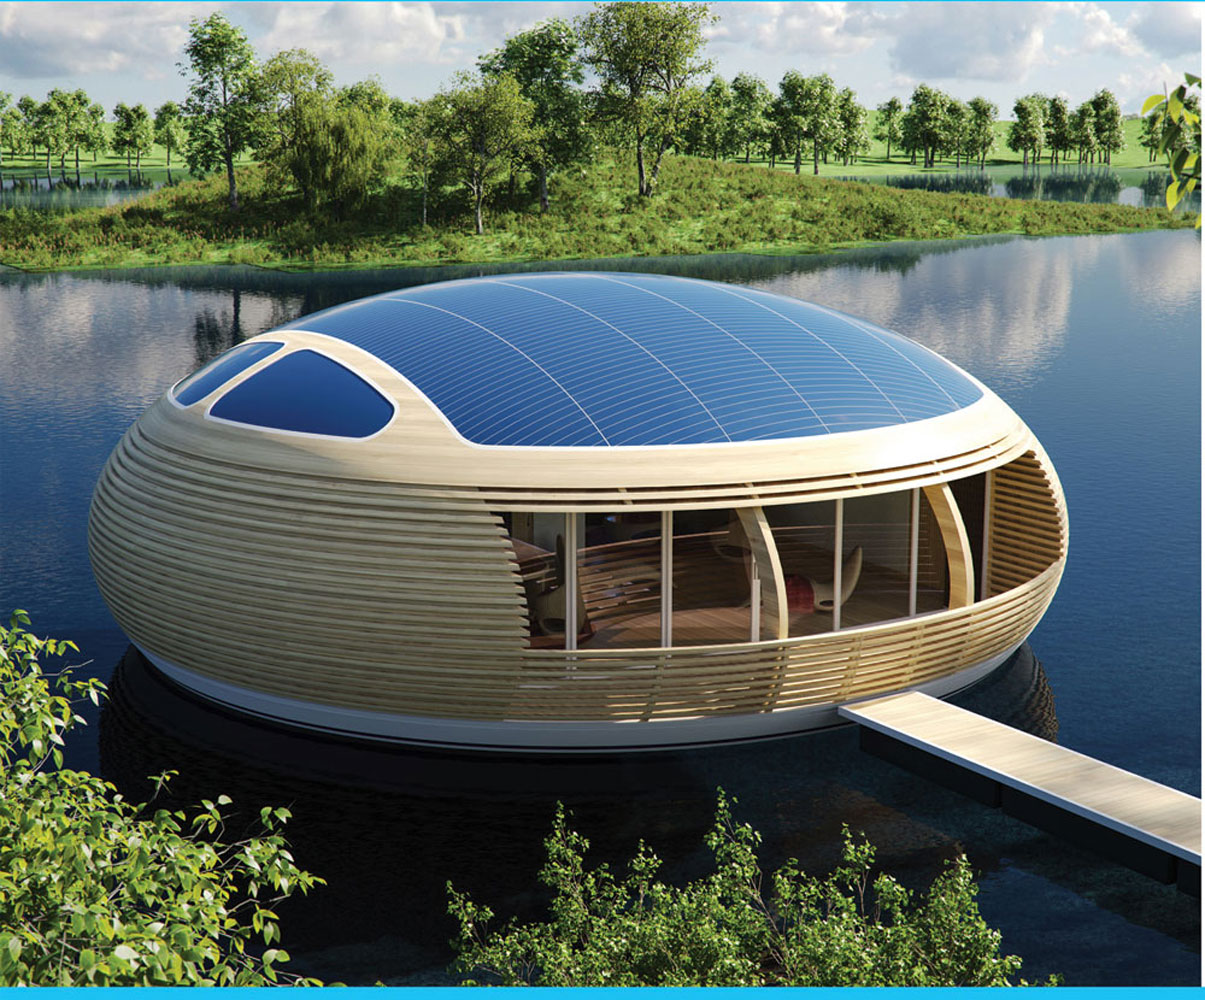 A new type of houseboat